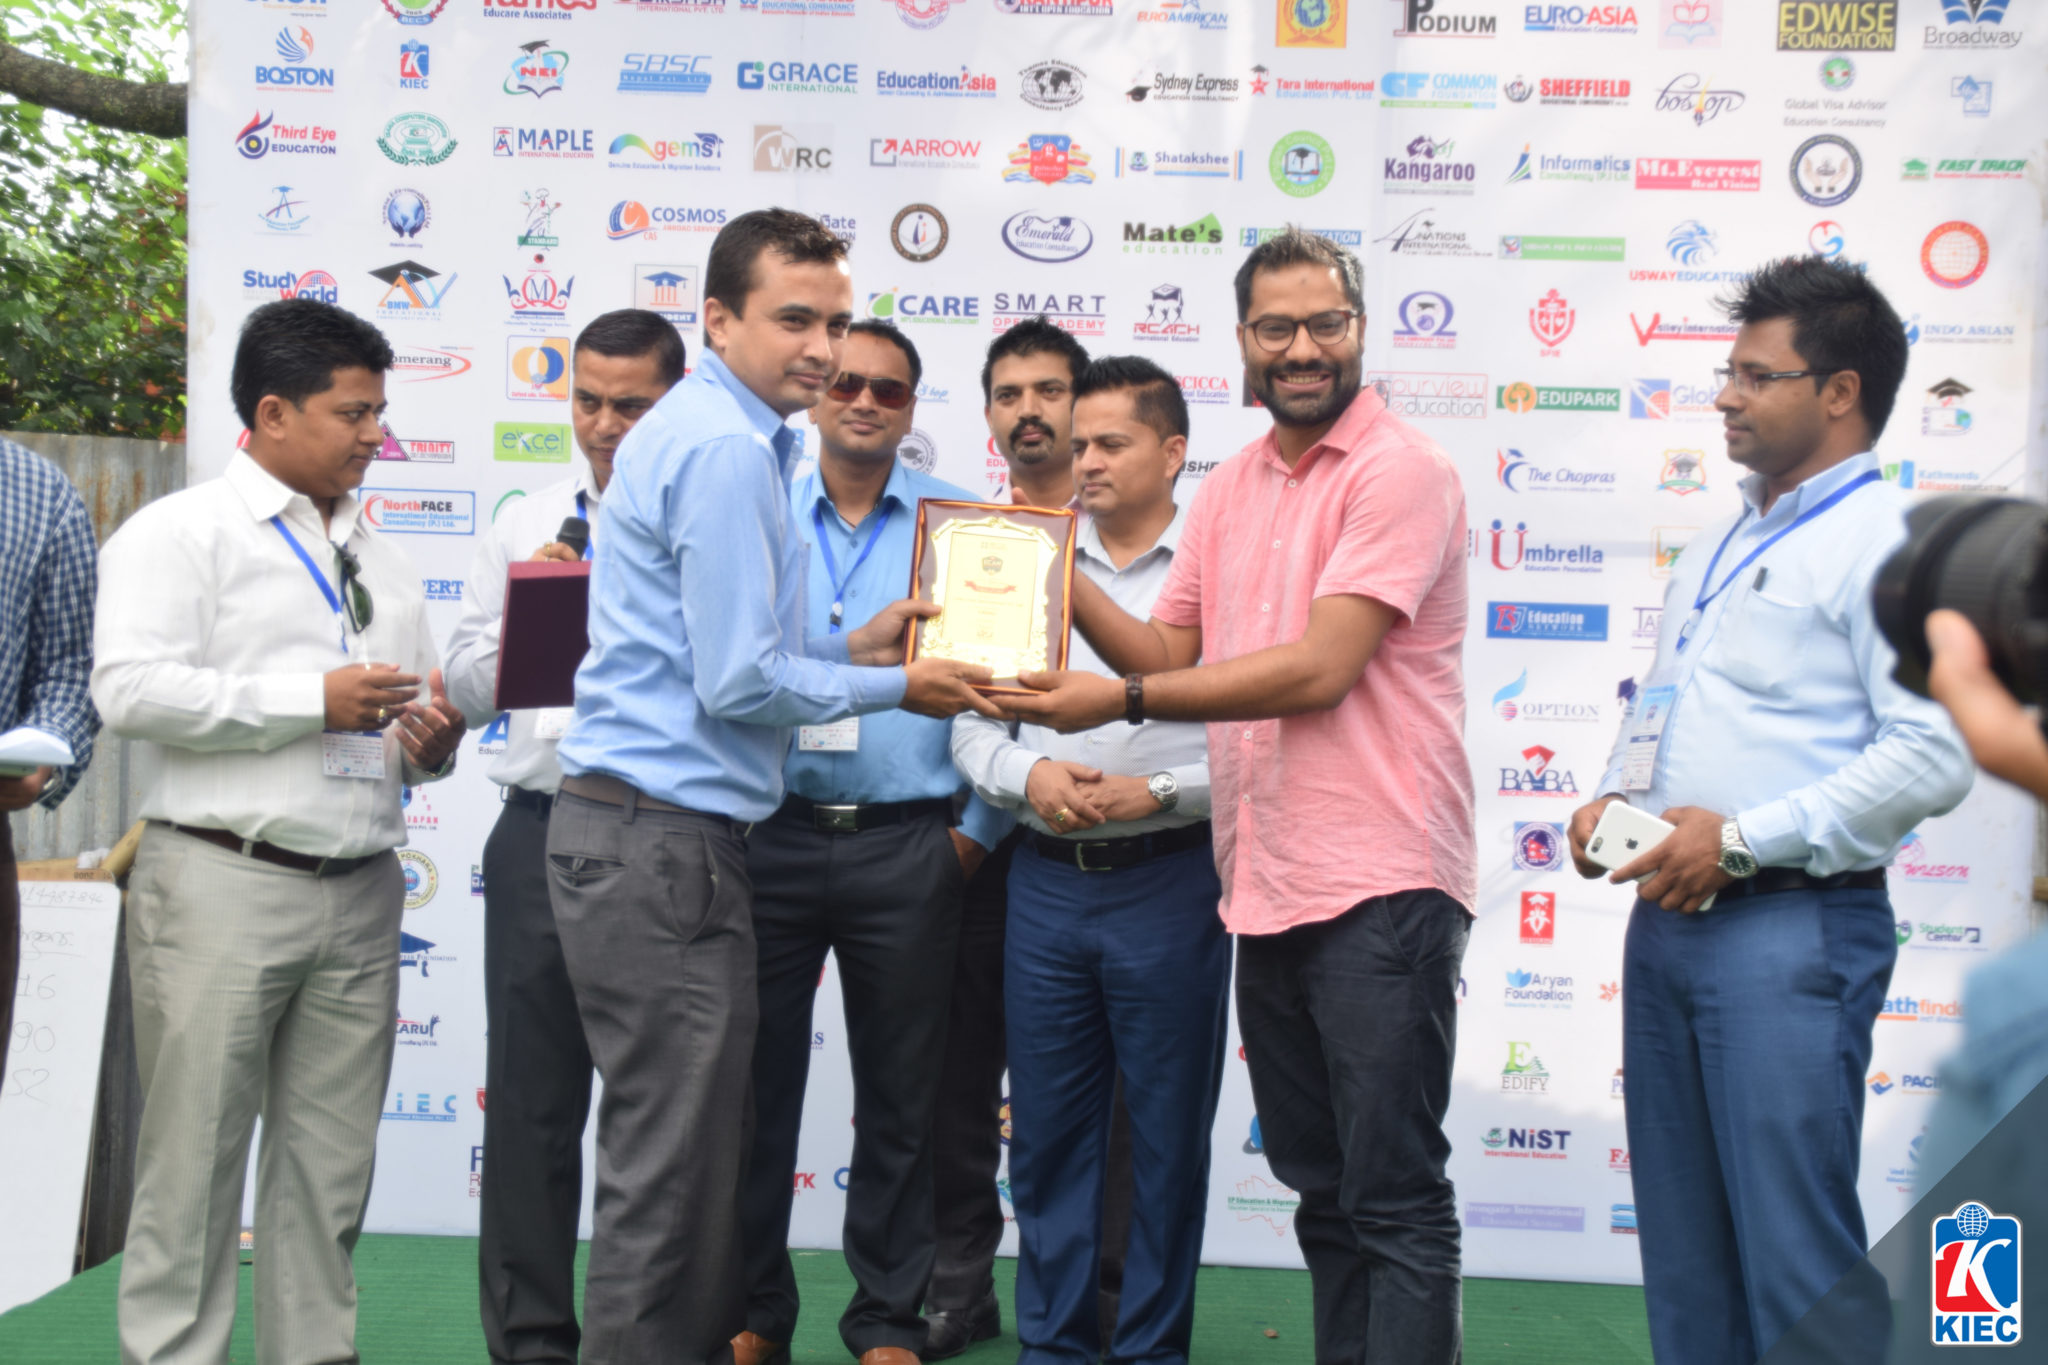 KIEC MD Rajendra Rijal Presenting Token of Love